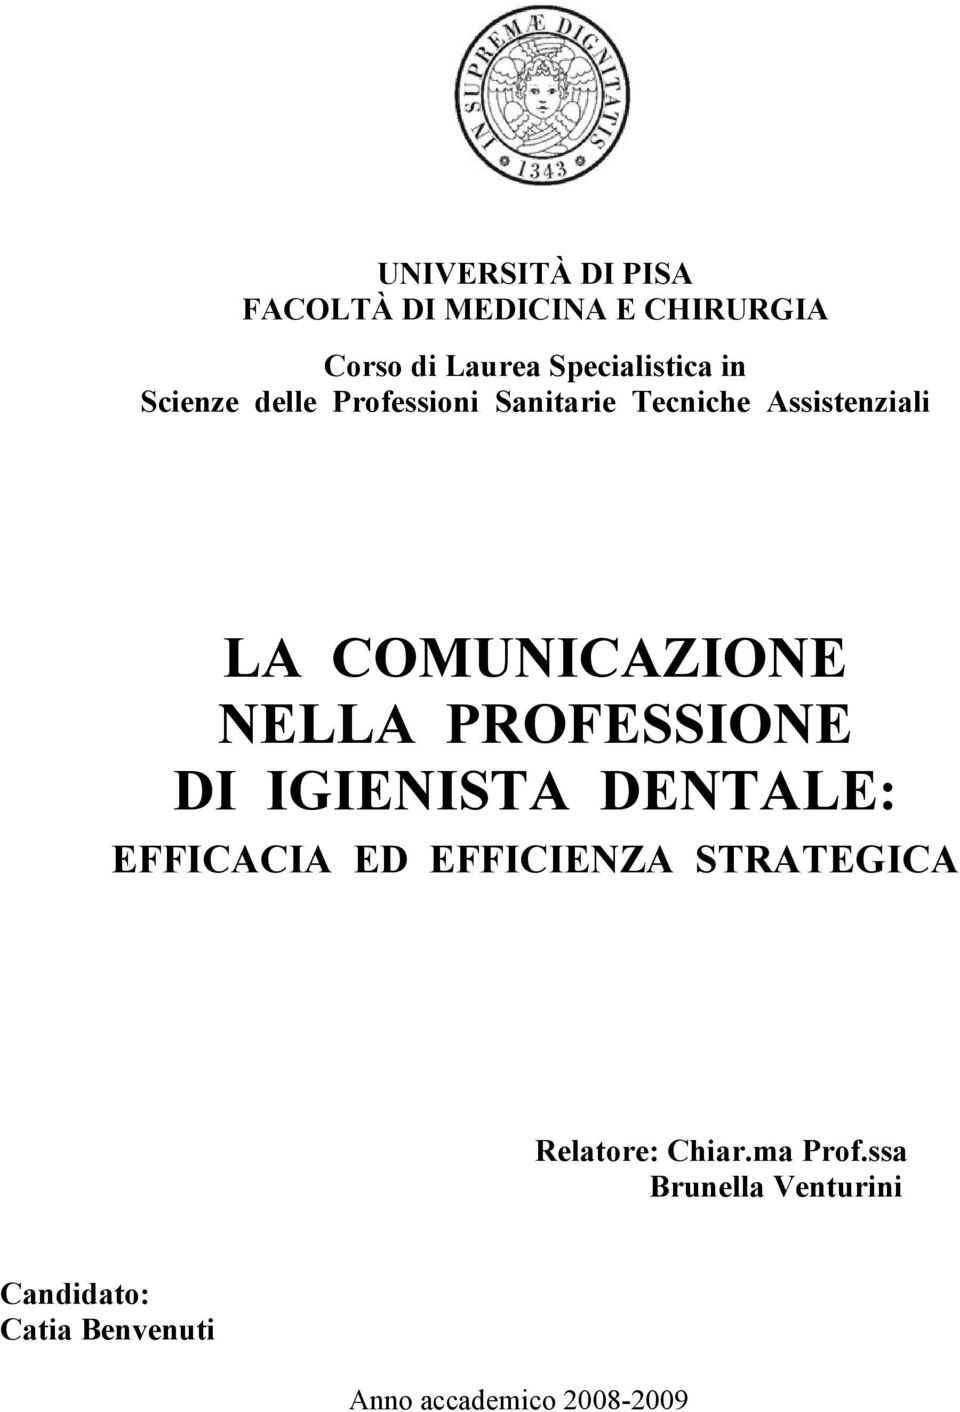 PROFESSIONE DI IGIENISTA DENTALE: EFFICACIA ED EFFICIENZA STRATEGICA Relatore: